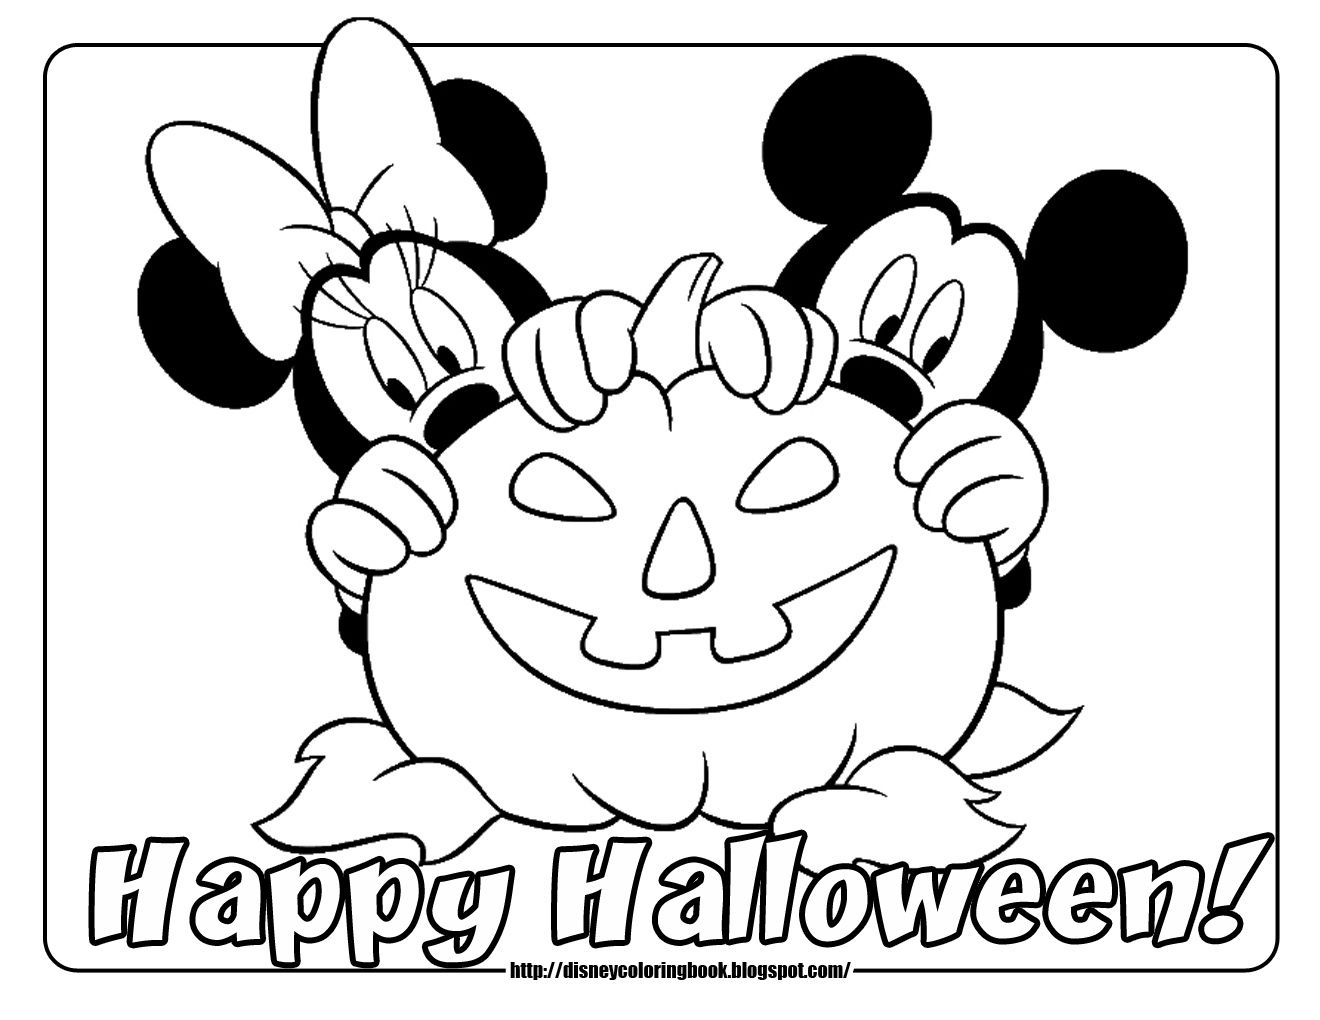 halloween coloring pages mickey mouse minnie mouse pumpkin lots of coloring pages - Coloring Pages Mickey Mouse